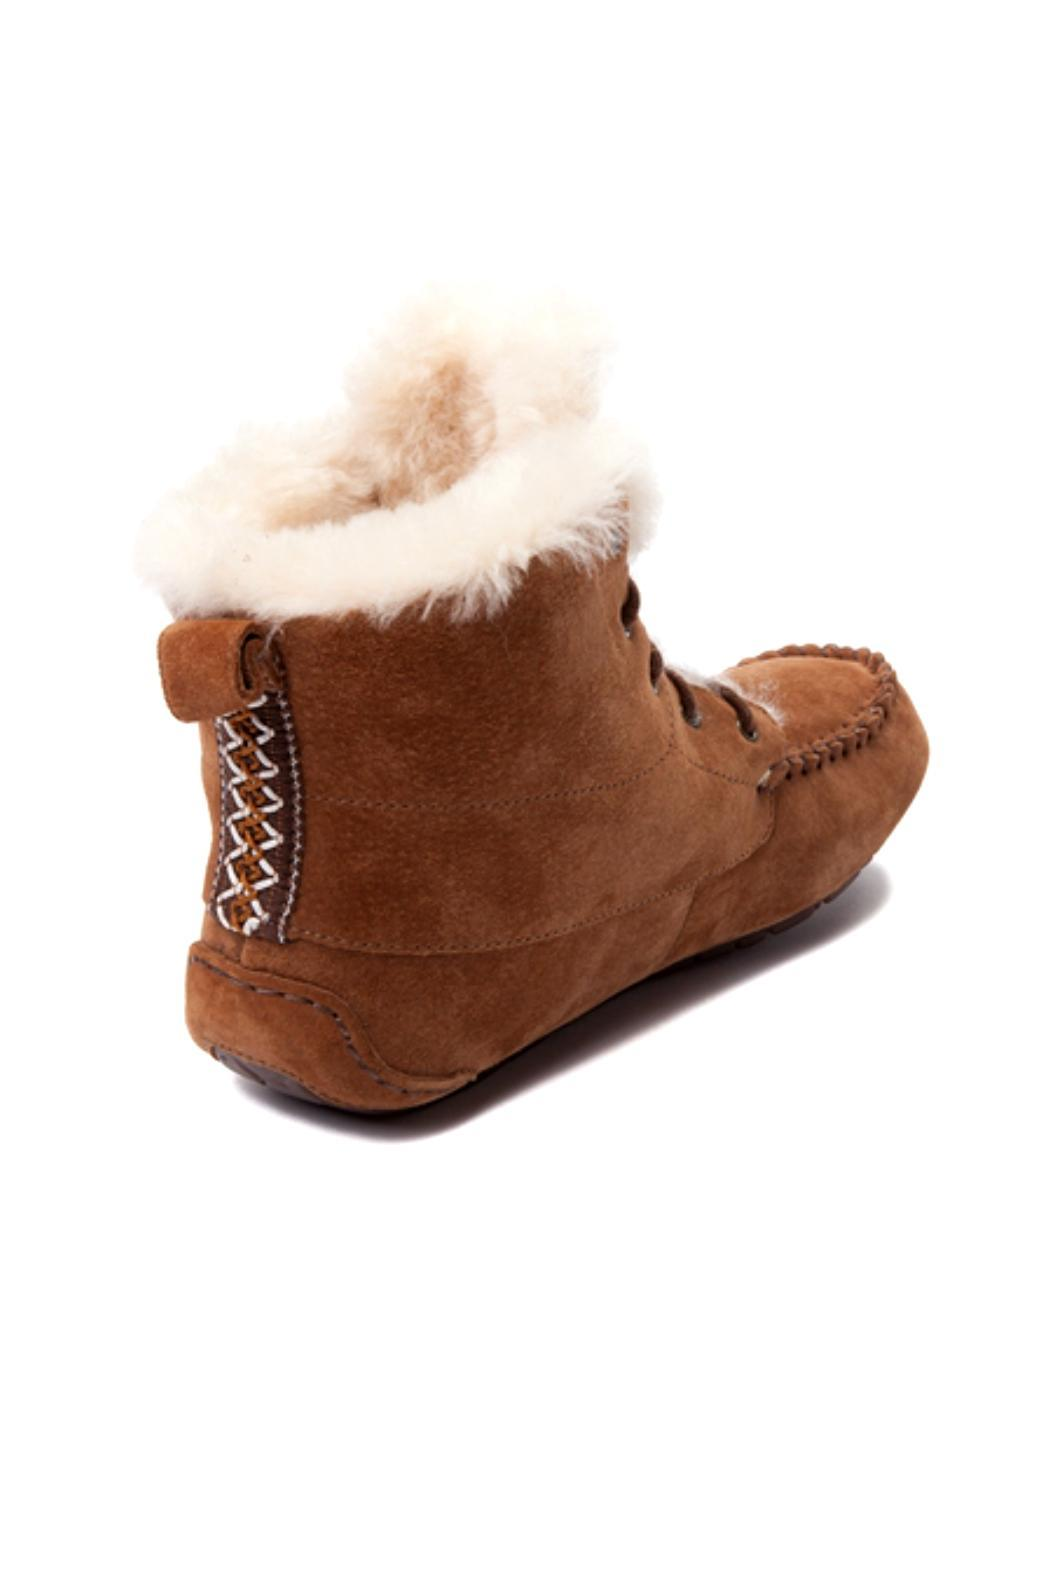 0f9f76fddc4 UGG Australia Chickaree Moccasin Bootie from Branford by Shoetique ...